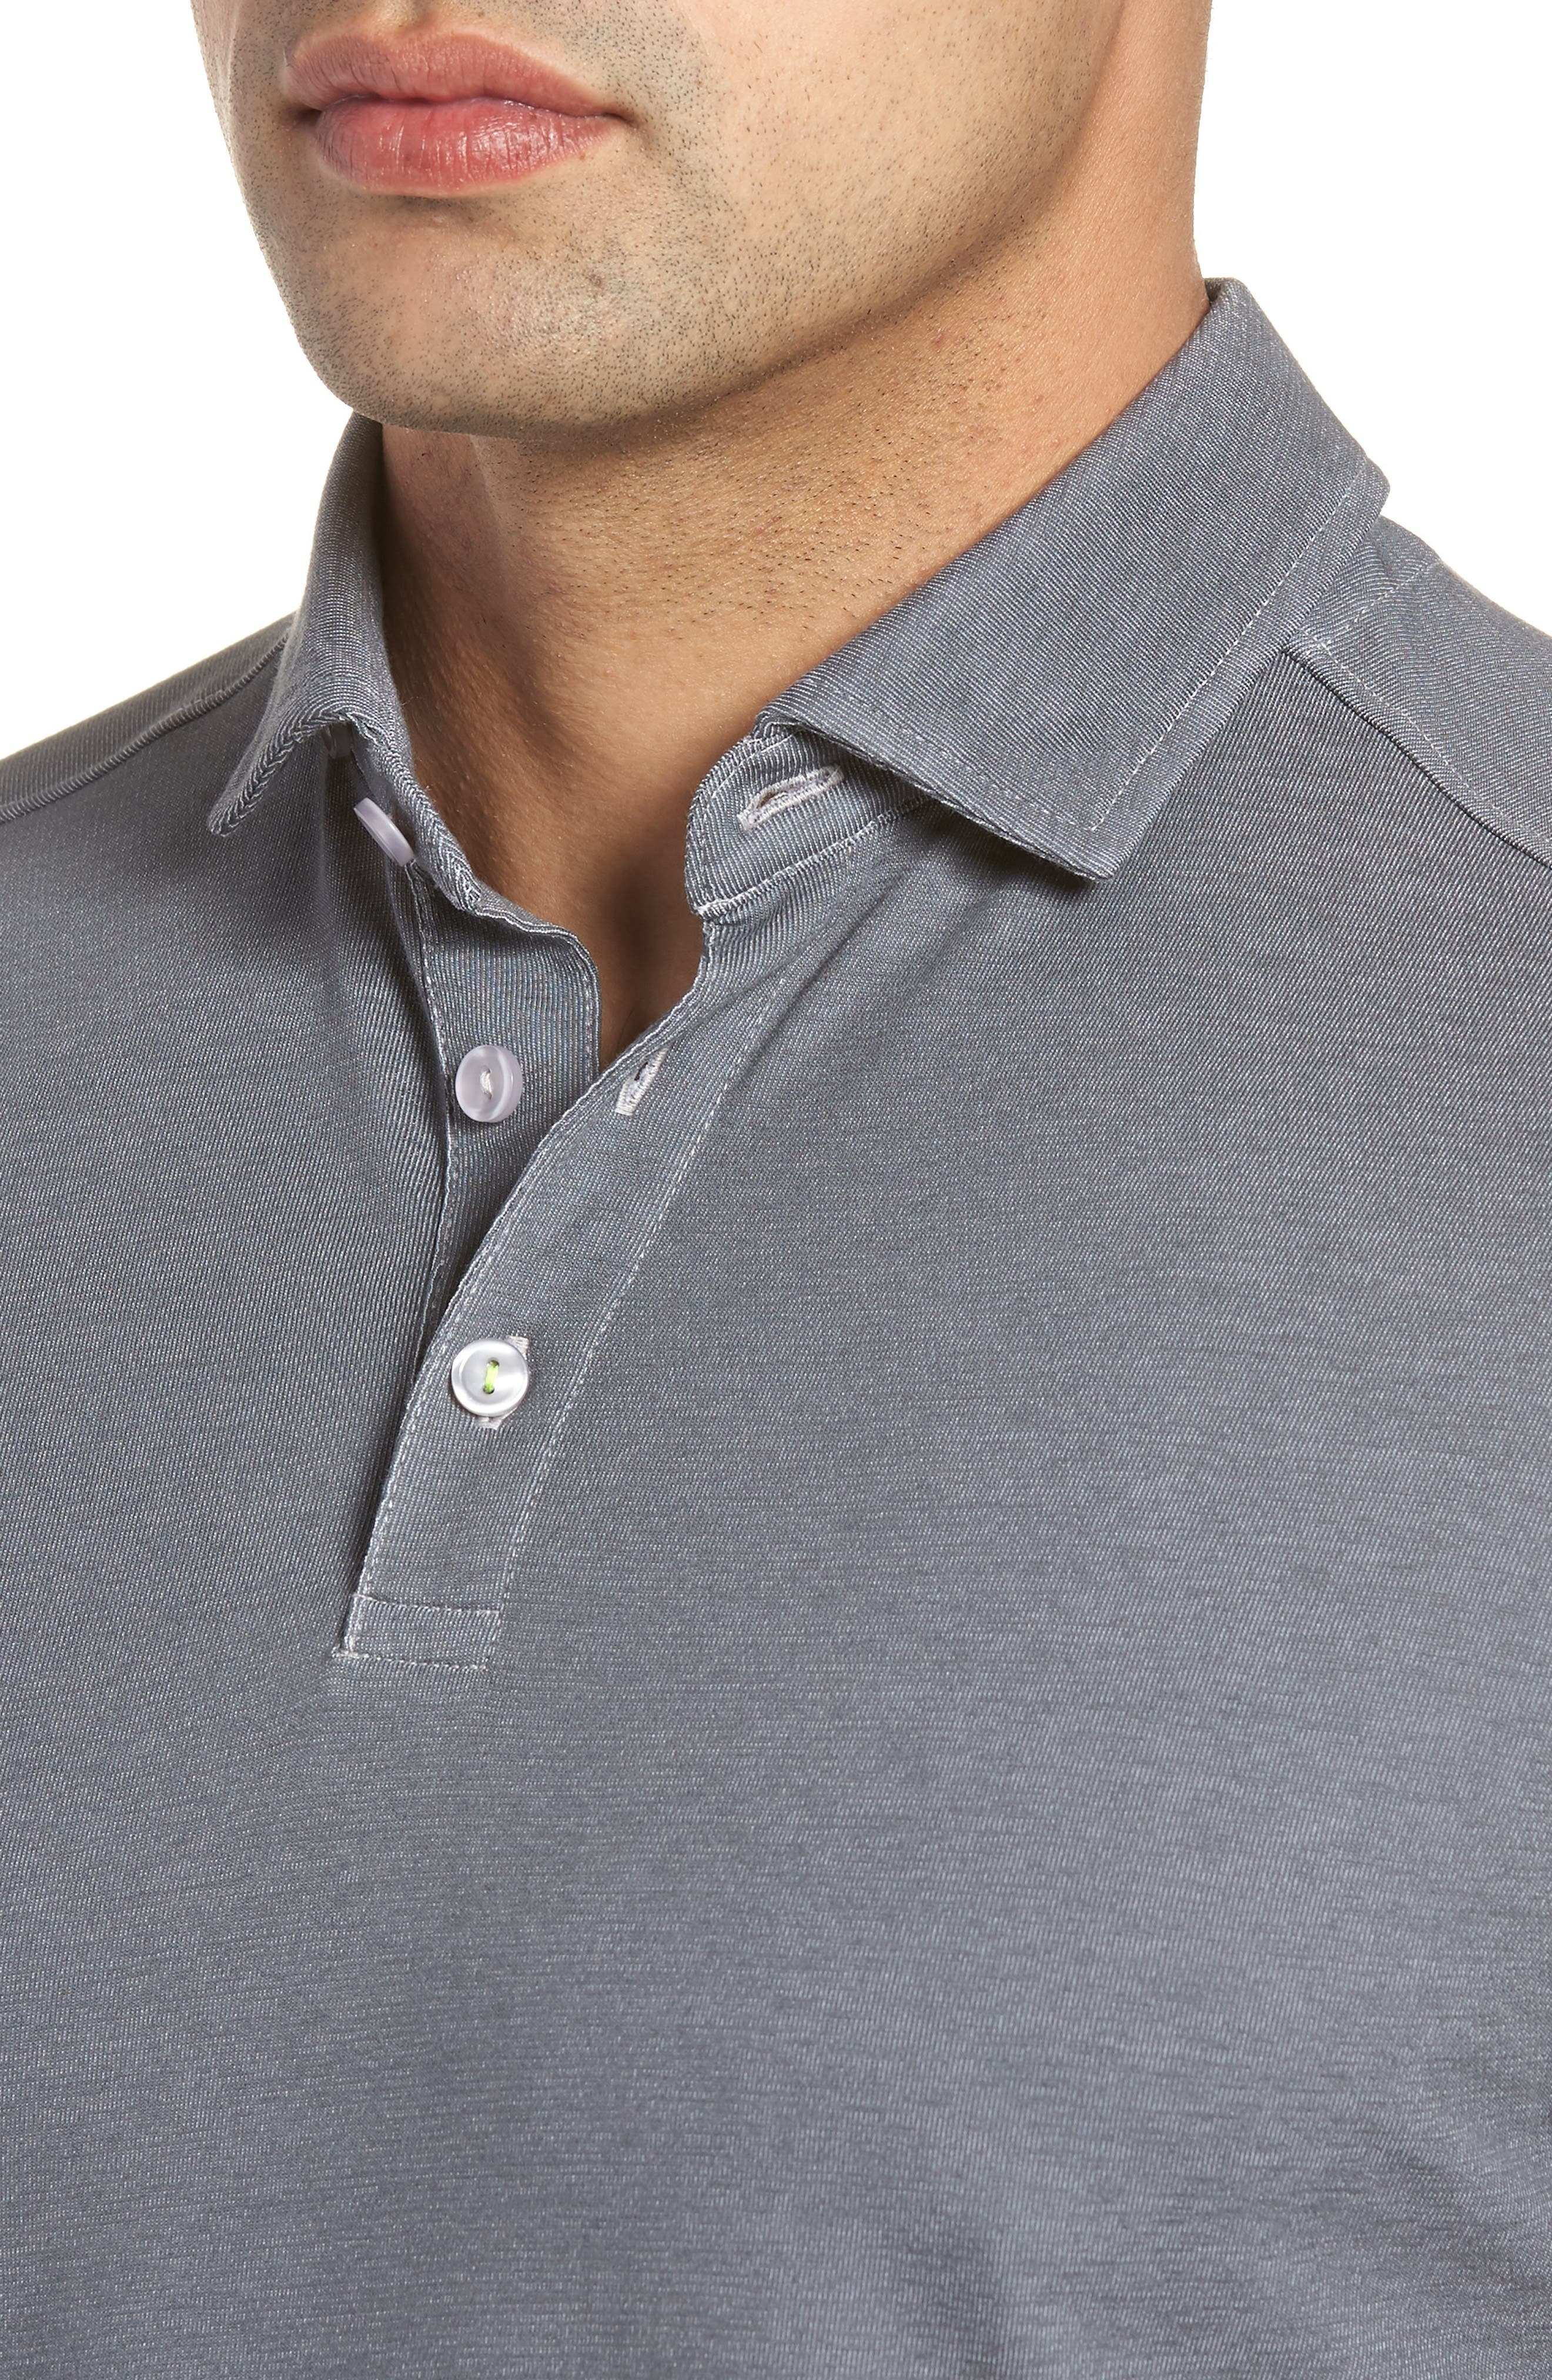 Knit Polo,                             Alternate thumbnail 4, color,                             Grey